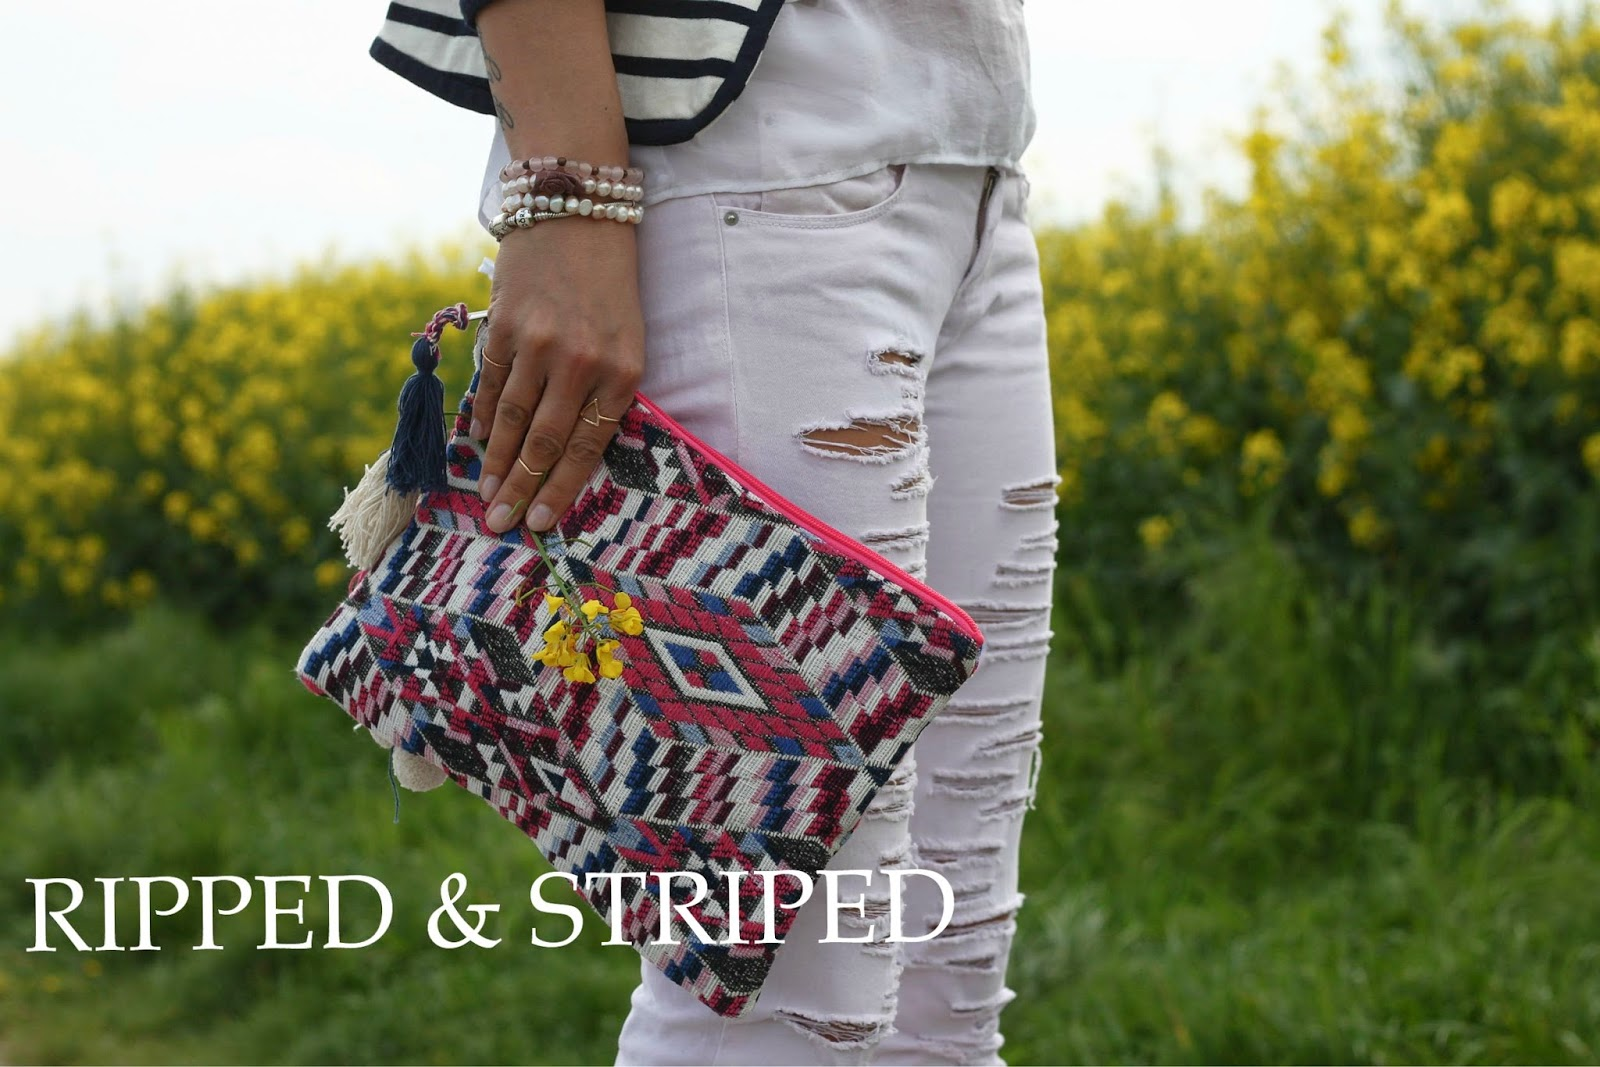 Ripped & Striped